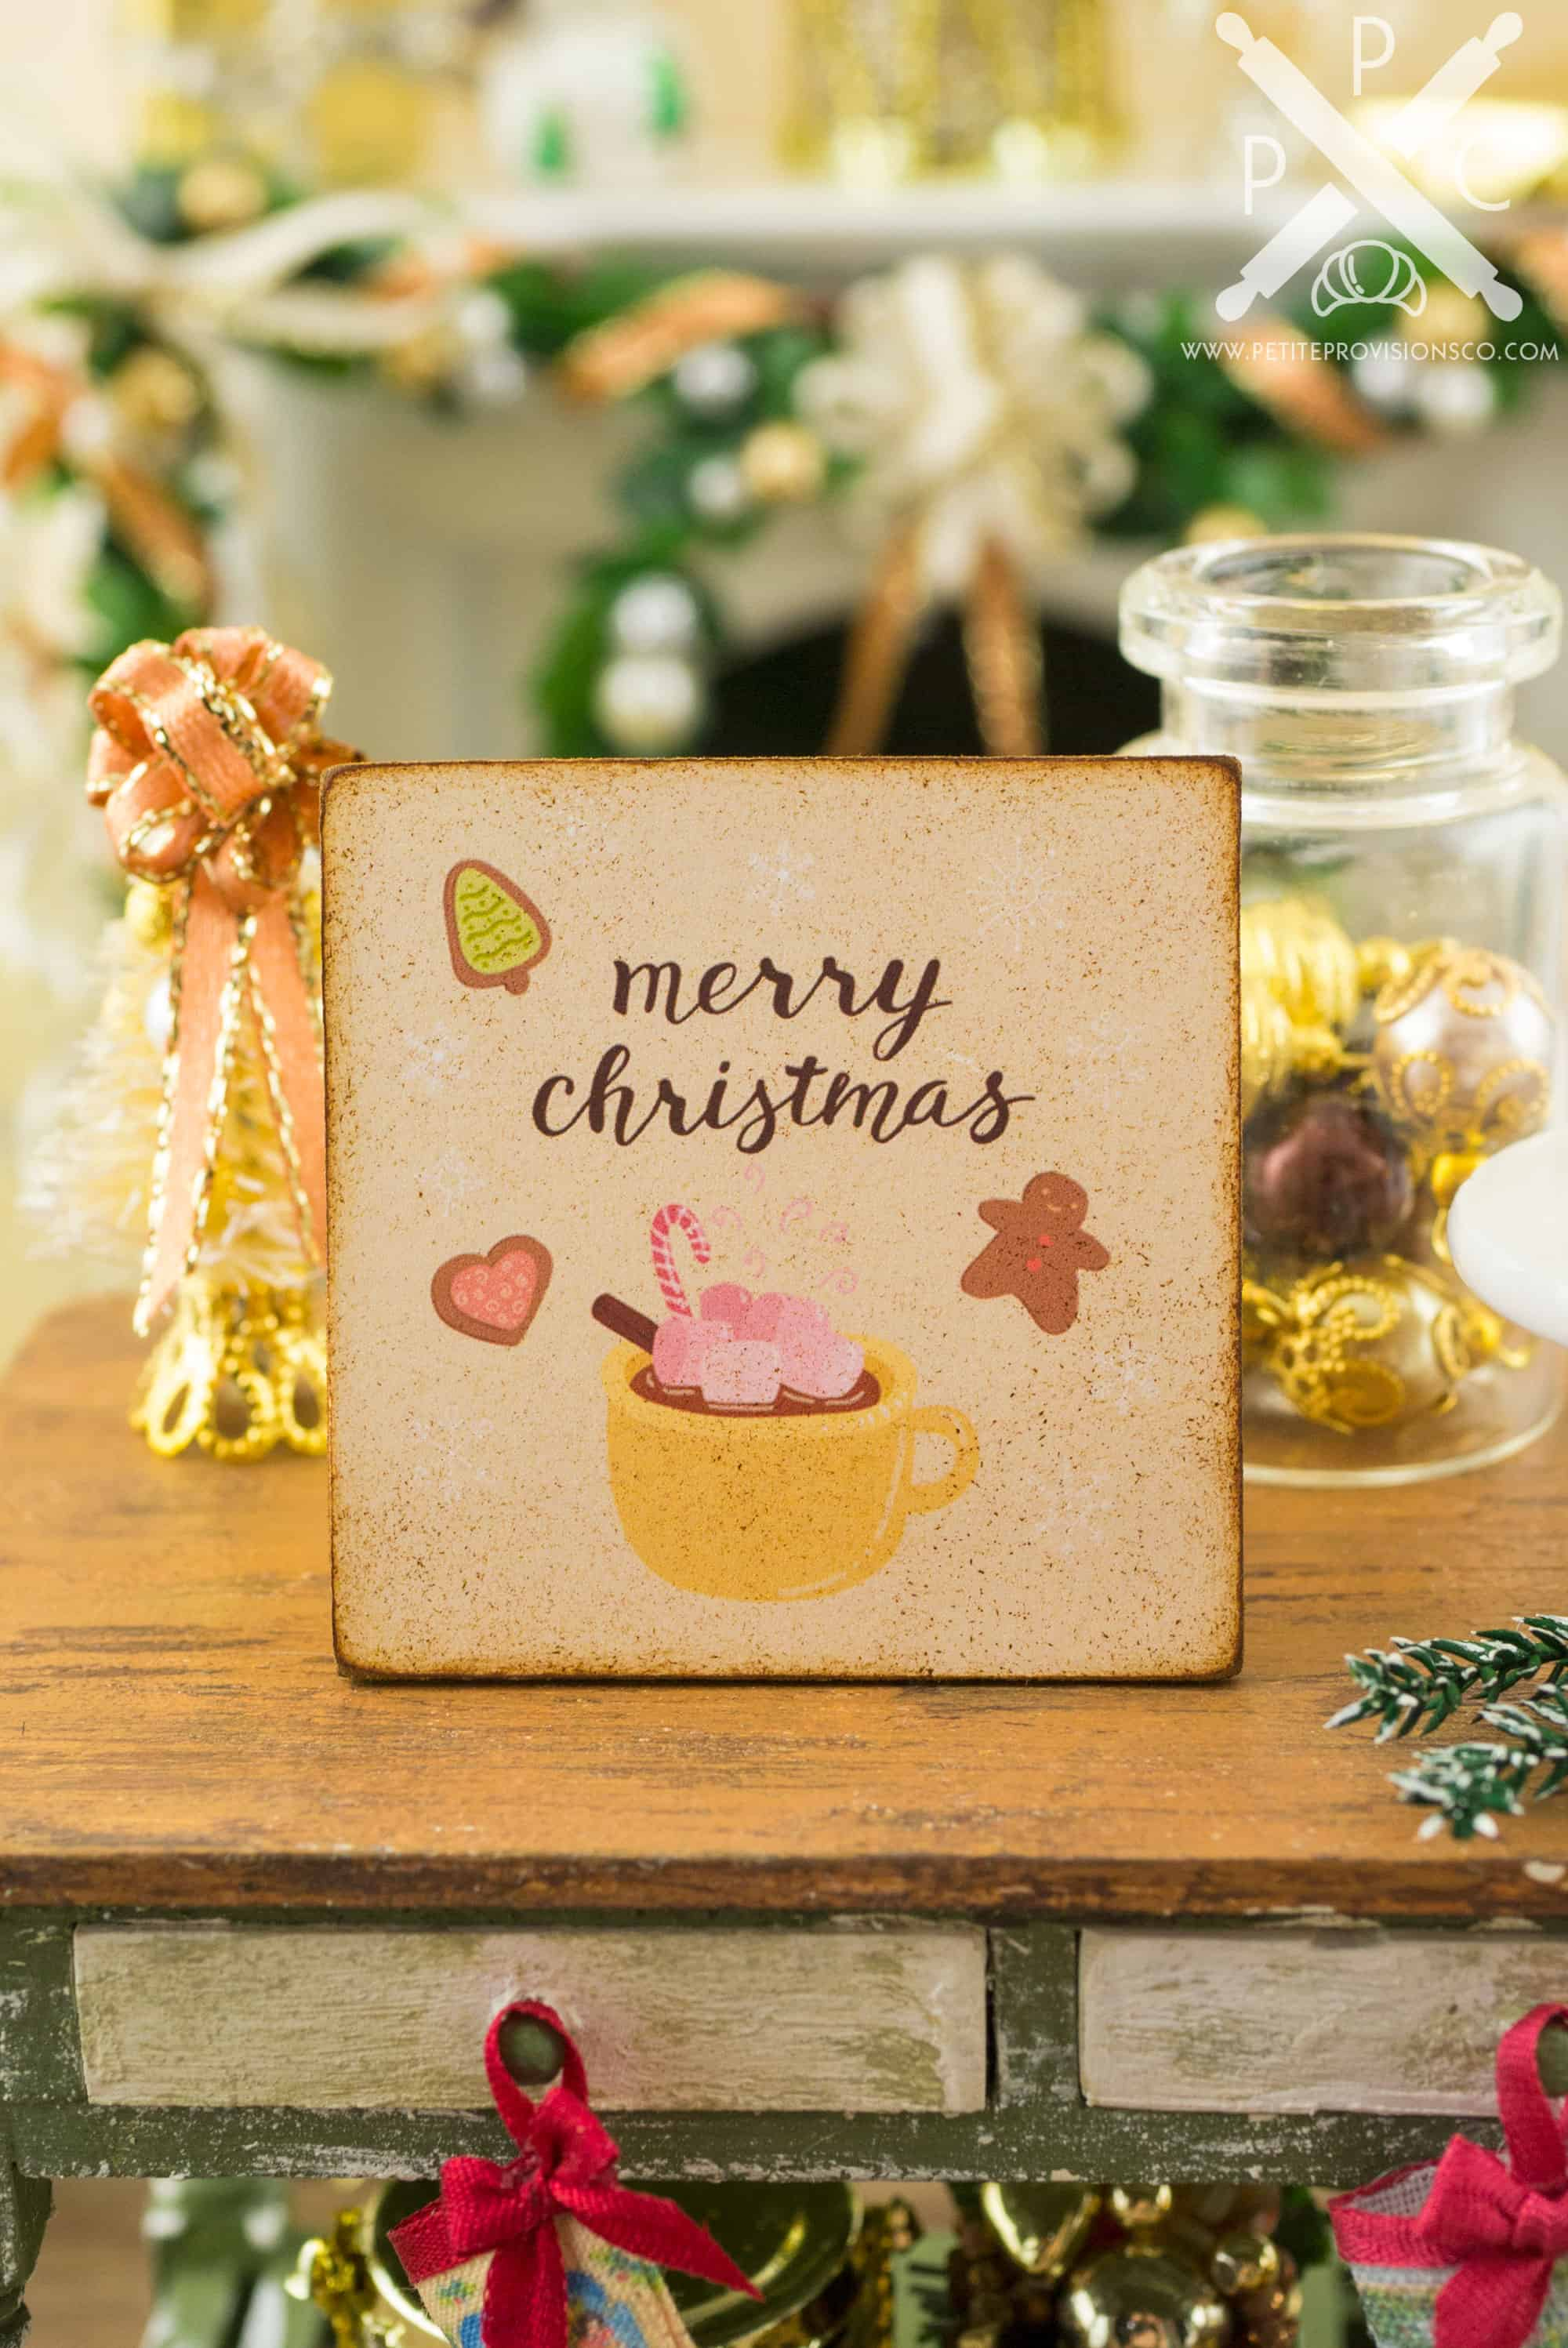 Merry Christmas Cookies And Cocoa Sign Decorative Christmas Sign